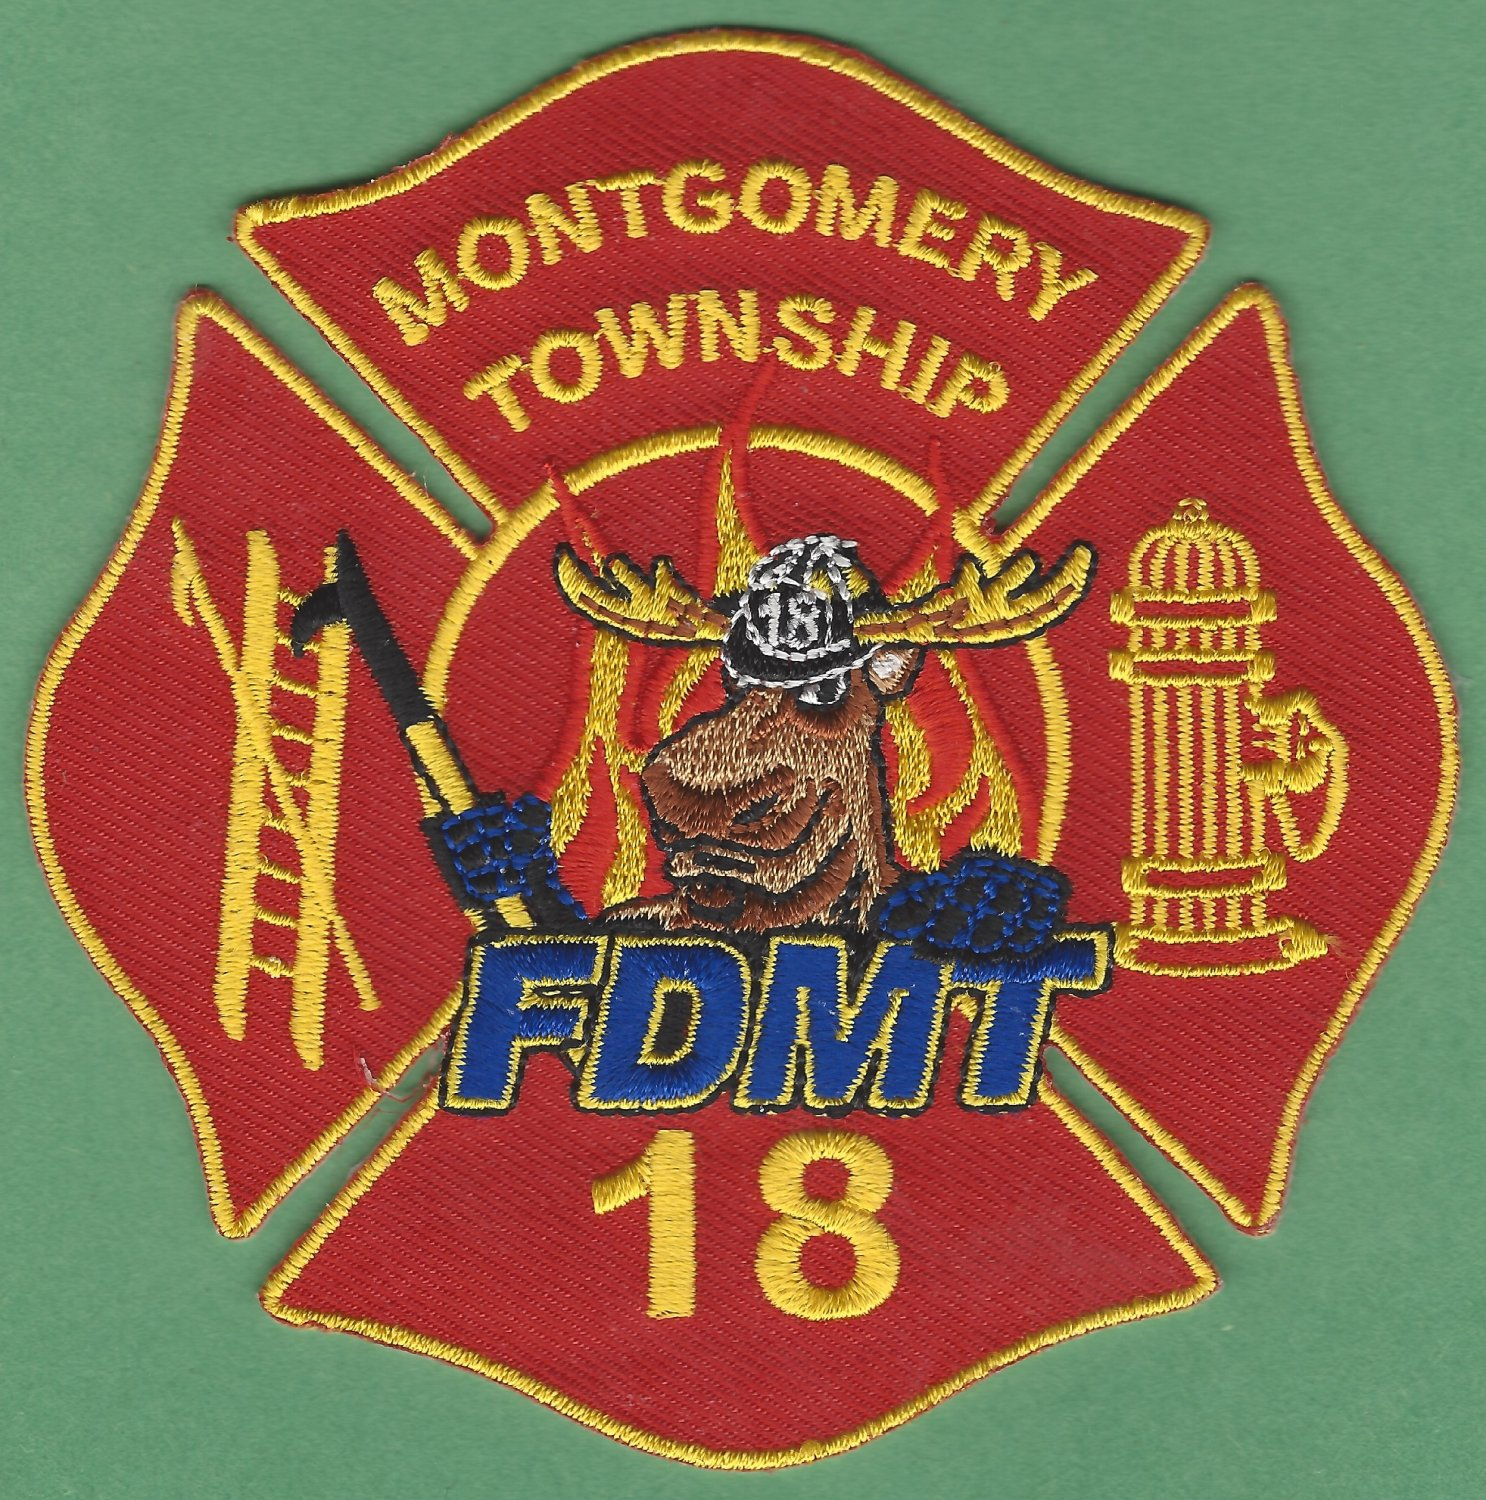 MONTGOMERY TOWNSHIP PENNSYLVANIA FIRE RESCUE PATCH